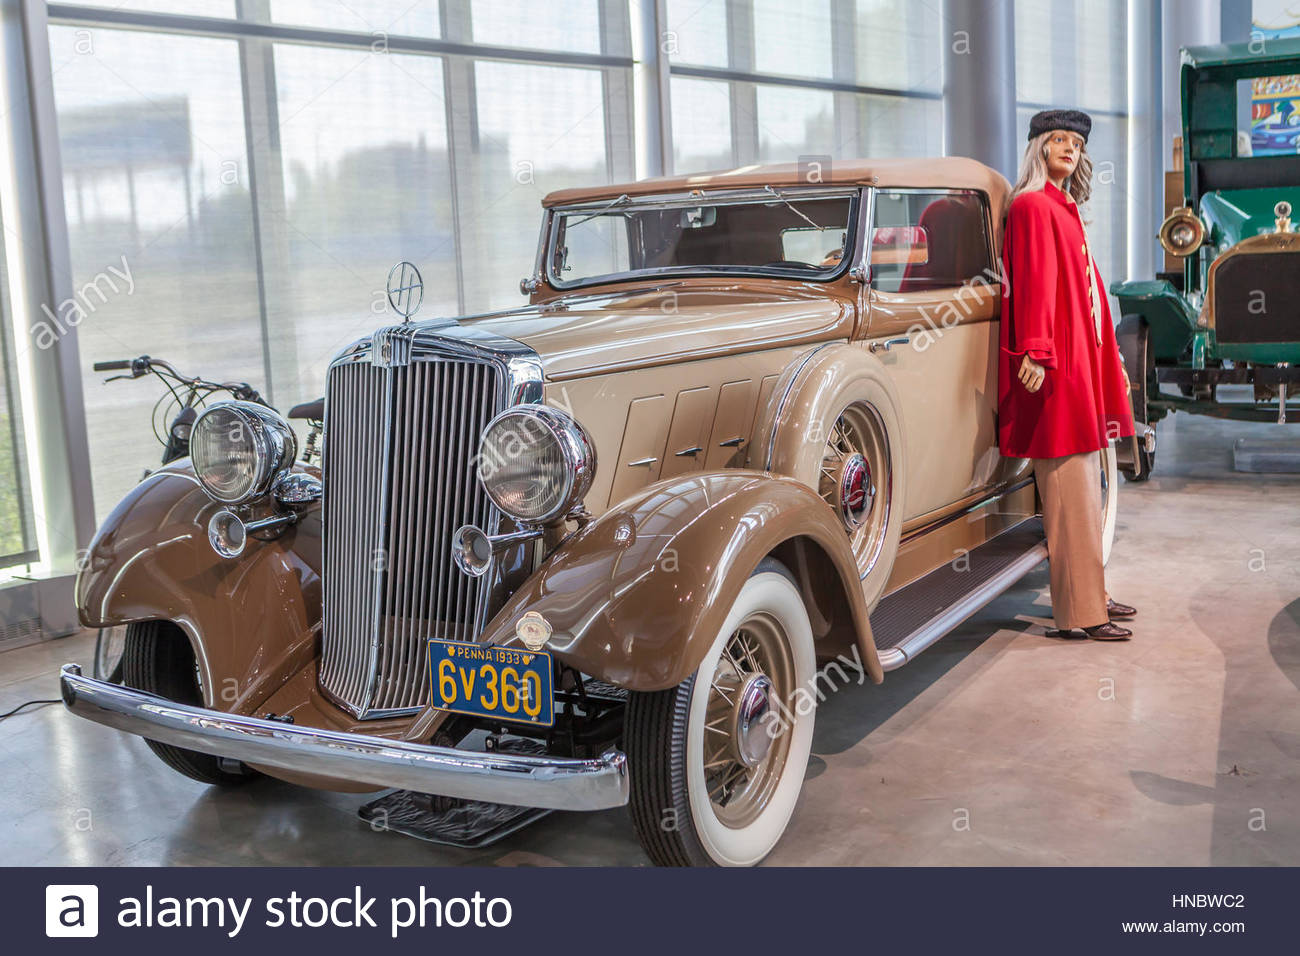 A Hudson Roadster from the 1930's on exhibit at America On Wheels is an over-the-road transportation museum - Stock Image